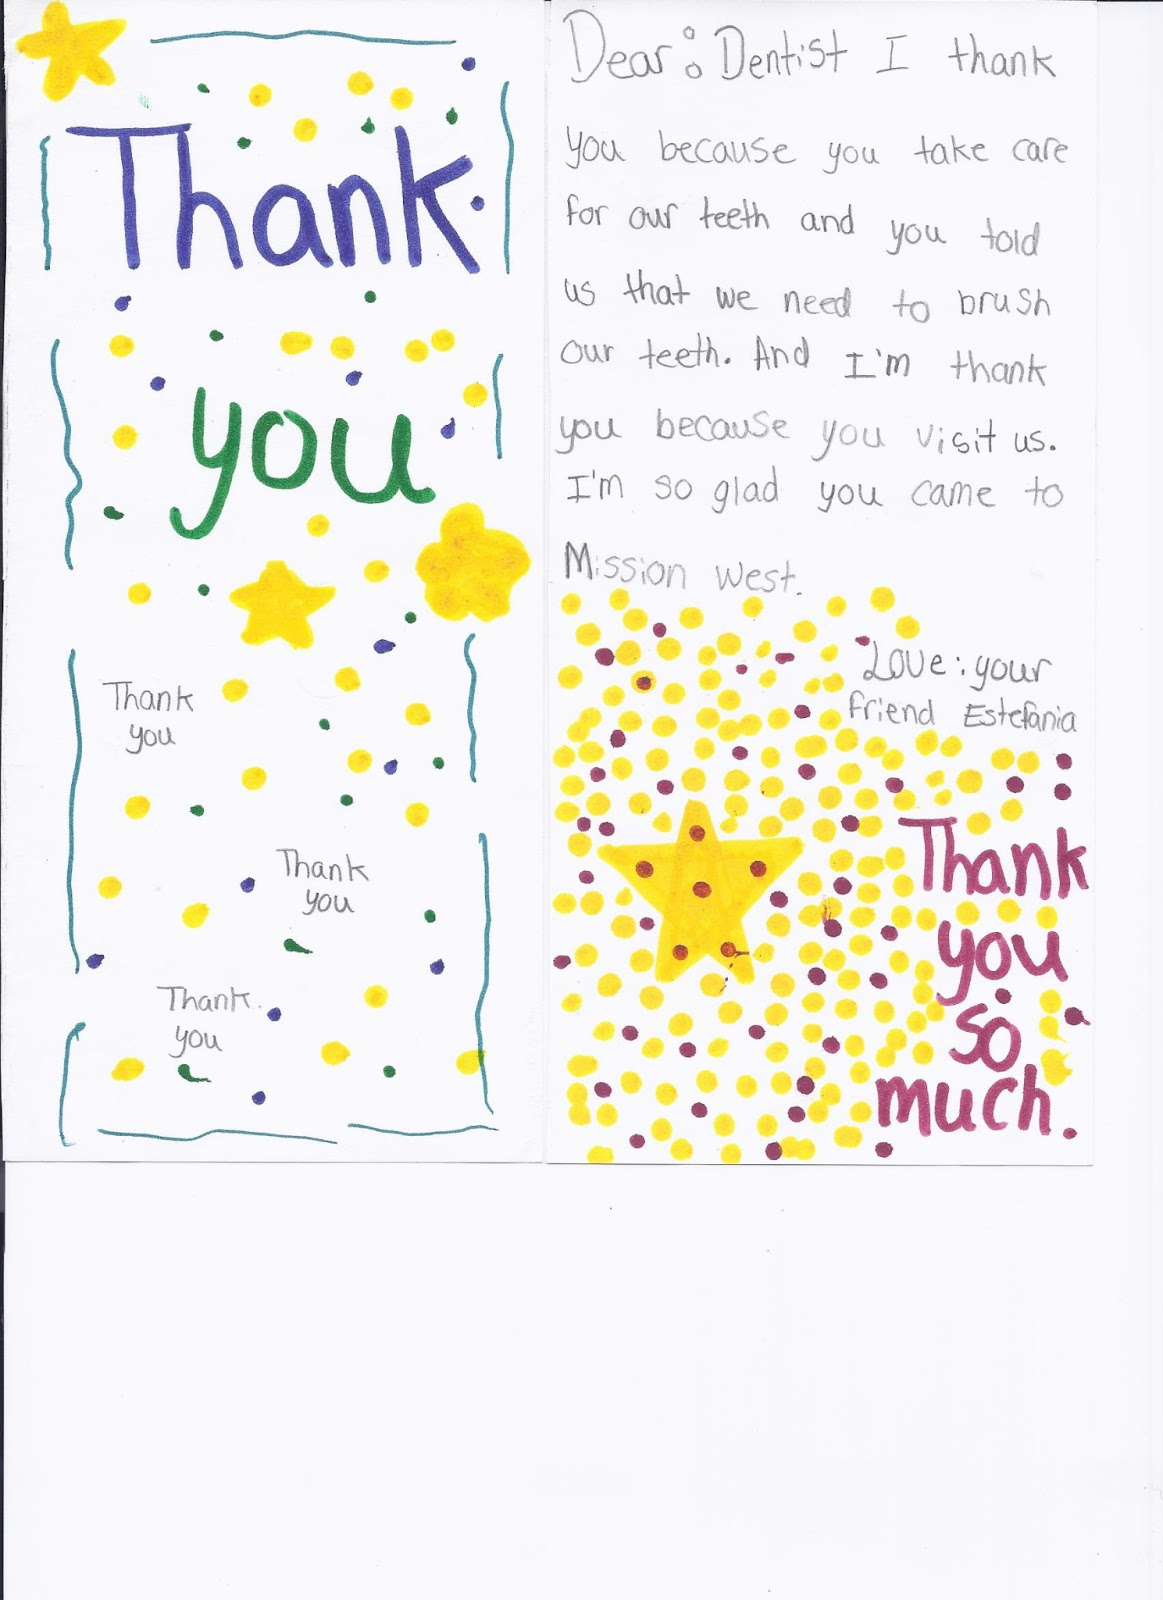 Cc dental thank you note from a student dr teresa cody spoke at mission west elementary schools career day last month about being a dentist and several of the students wrote beautiful thank you expocarfo